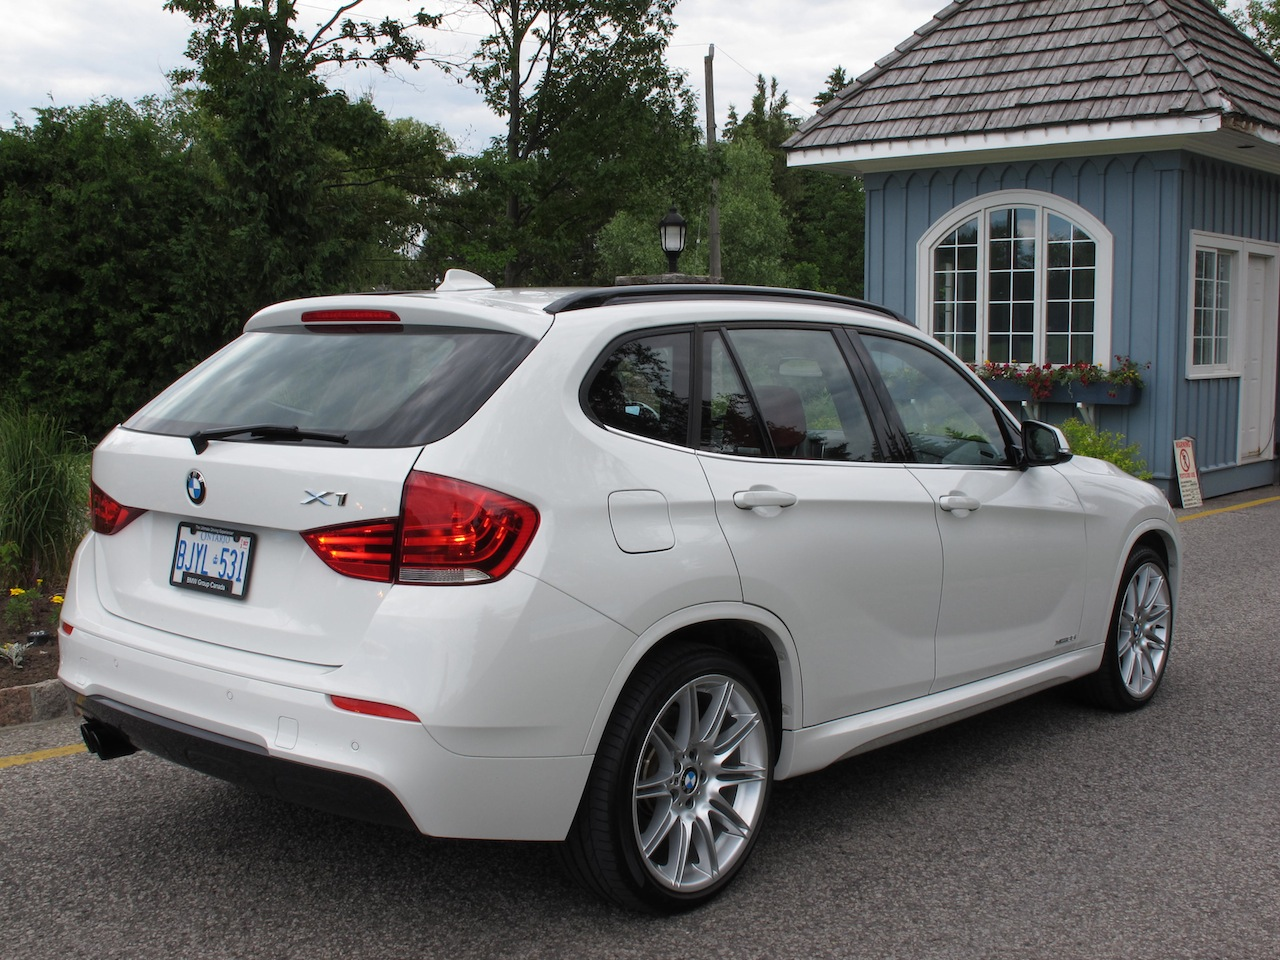 2013 Bmw X1 Xdrive35i M Sport Review Cars Photos Test